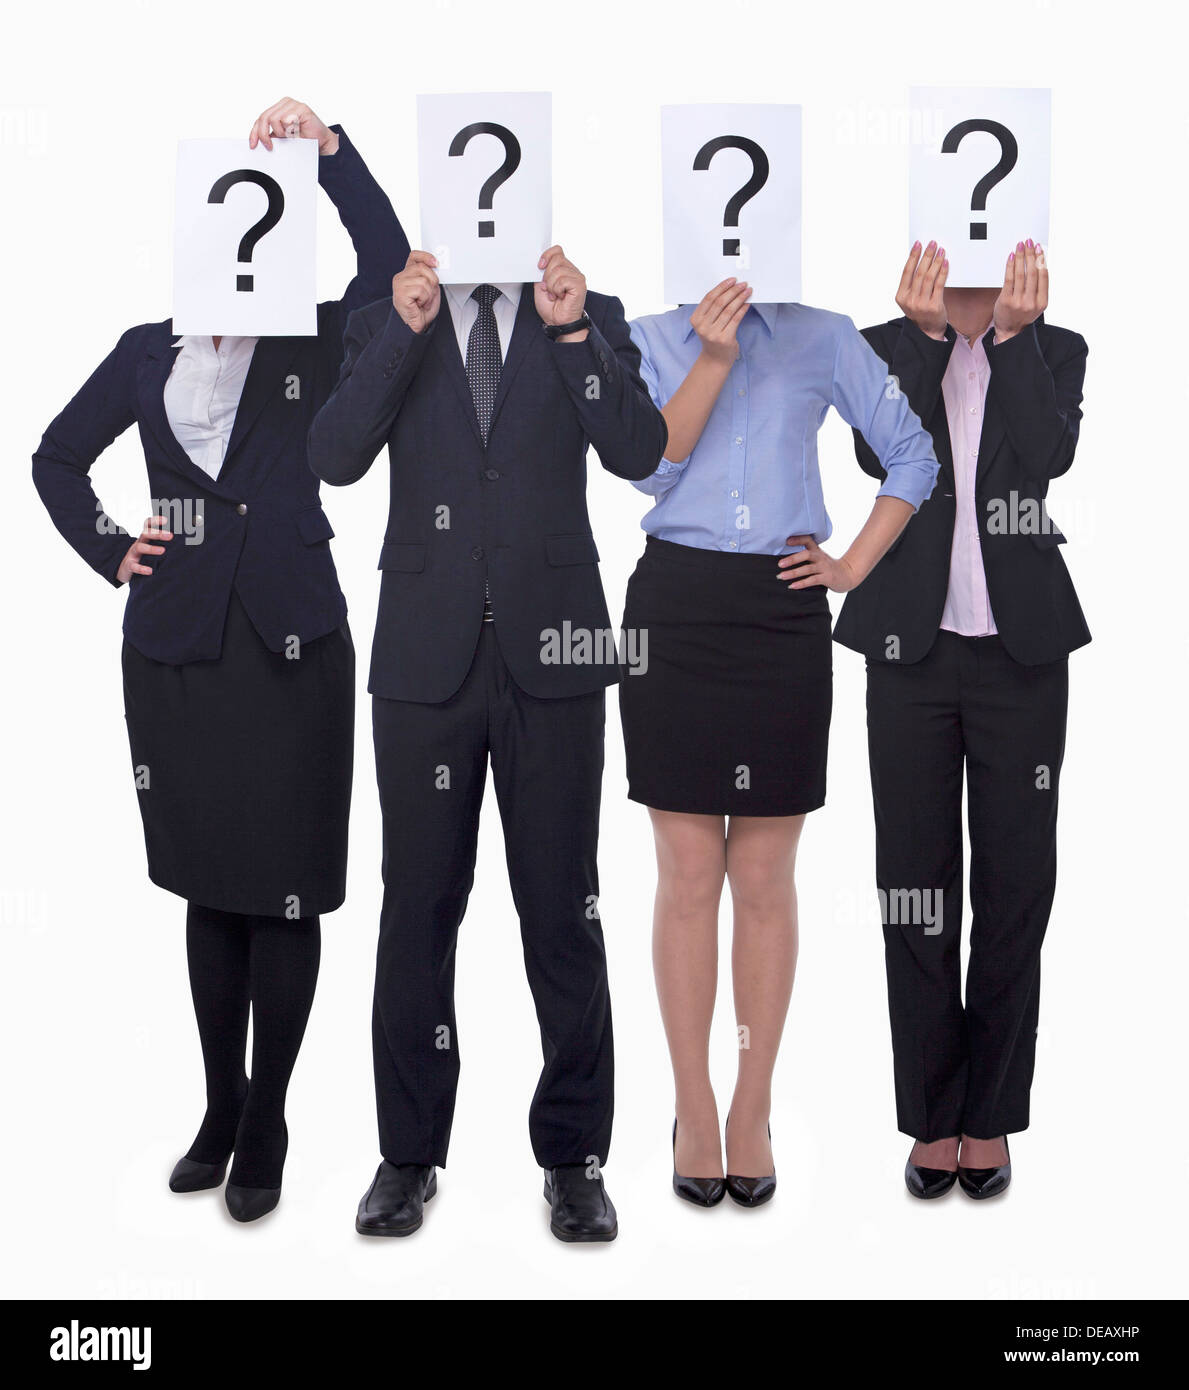 Four business people holding up paper with question mark, obscured face, studio shot - Stock Image